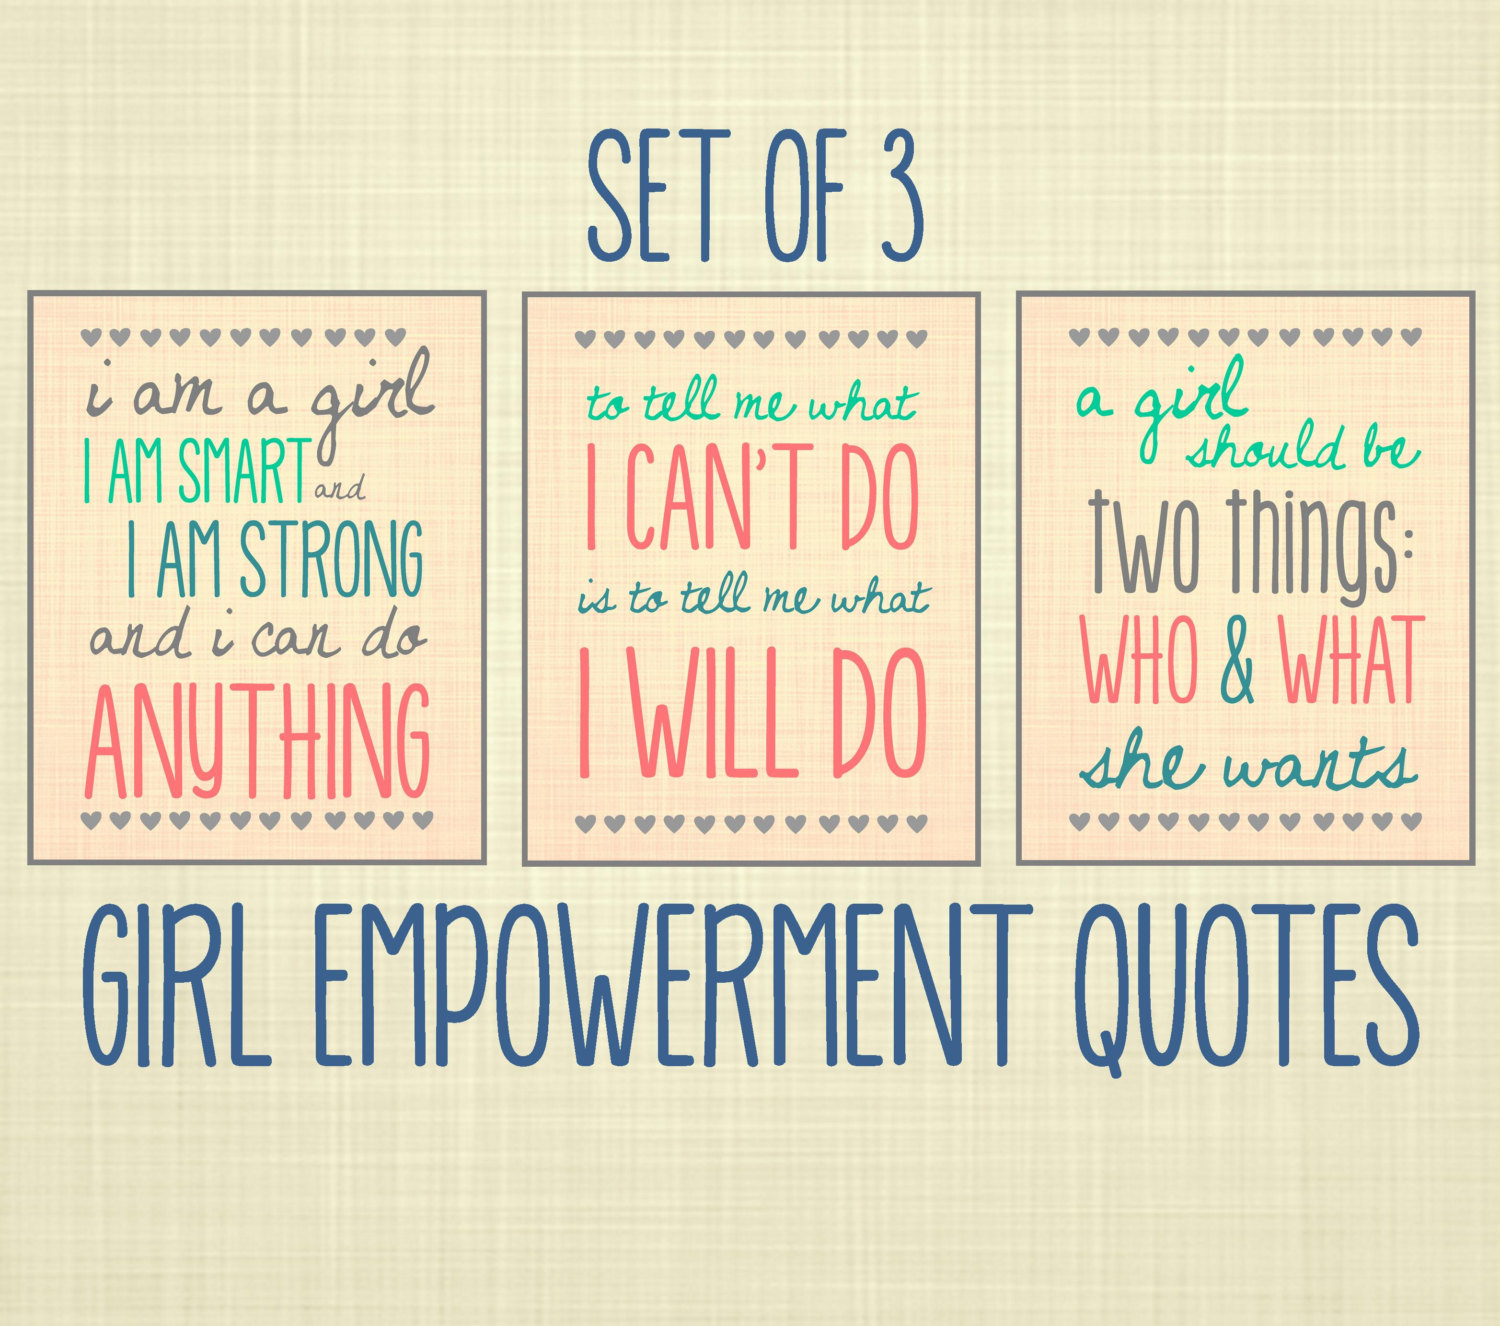 Girl Empowerment Quotes Quotes about Girl empowerment (40 quotes) Girl Empowerment Quotes